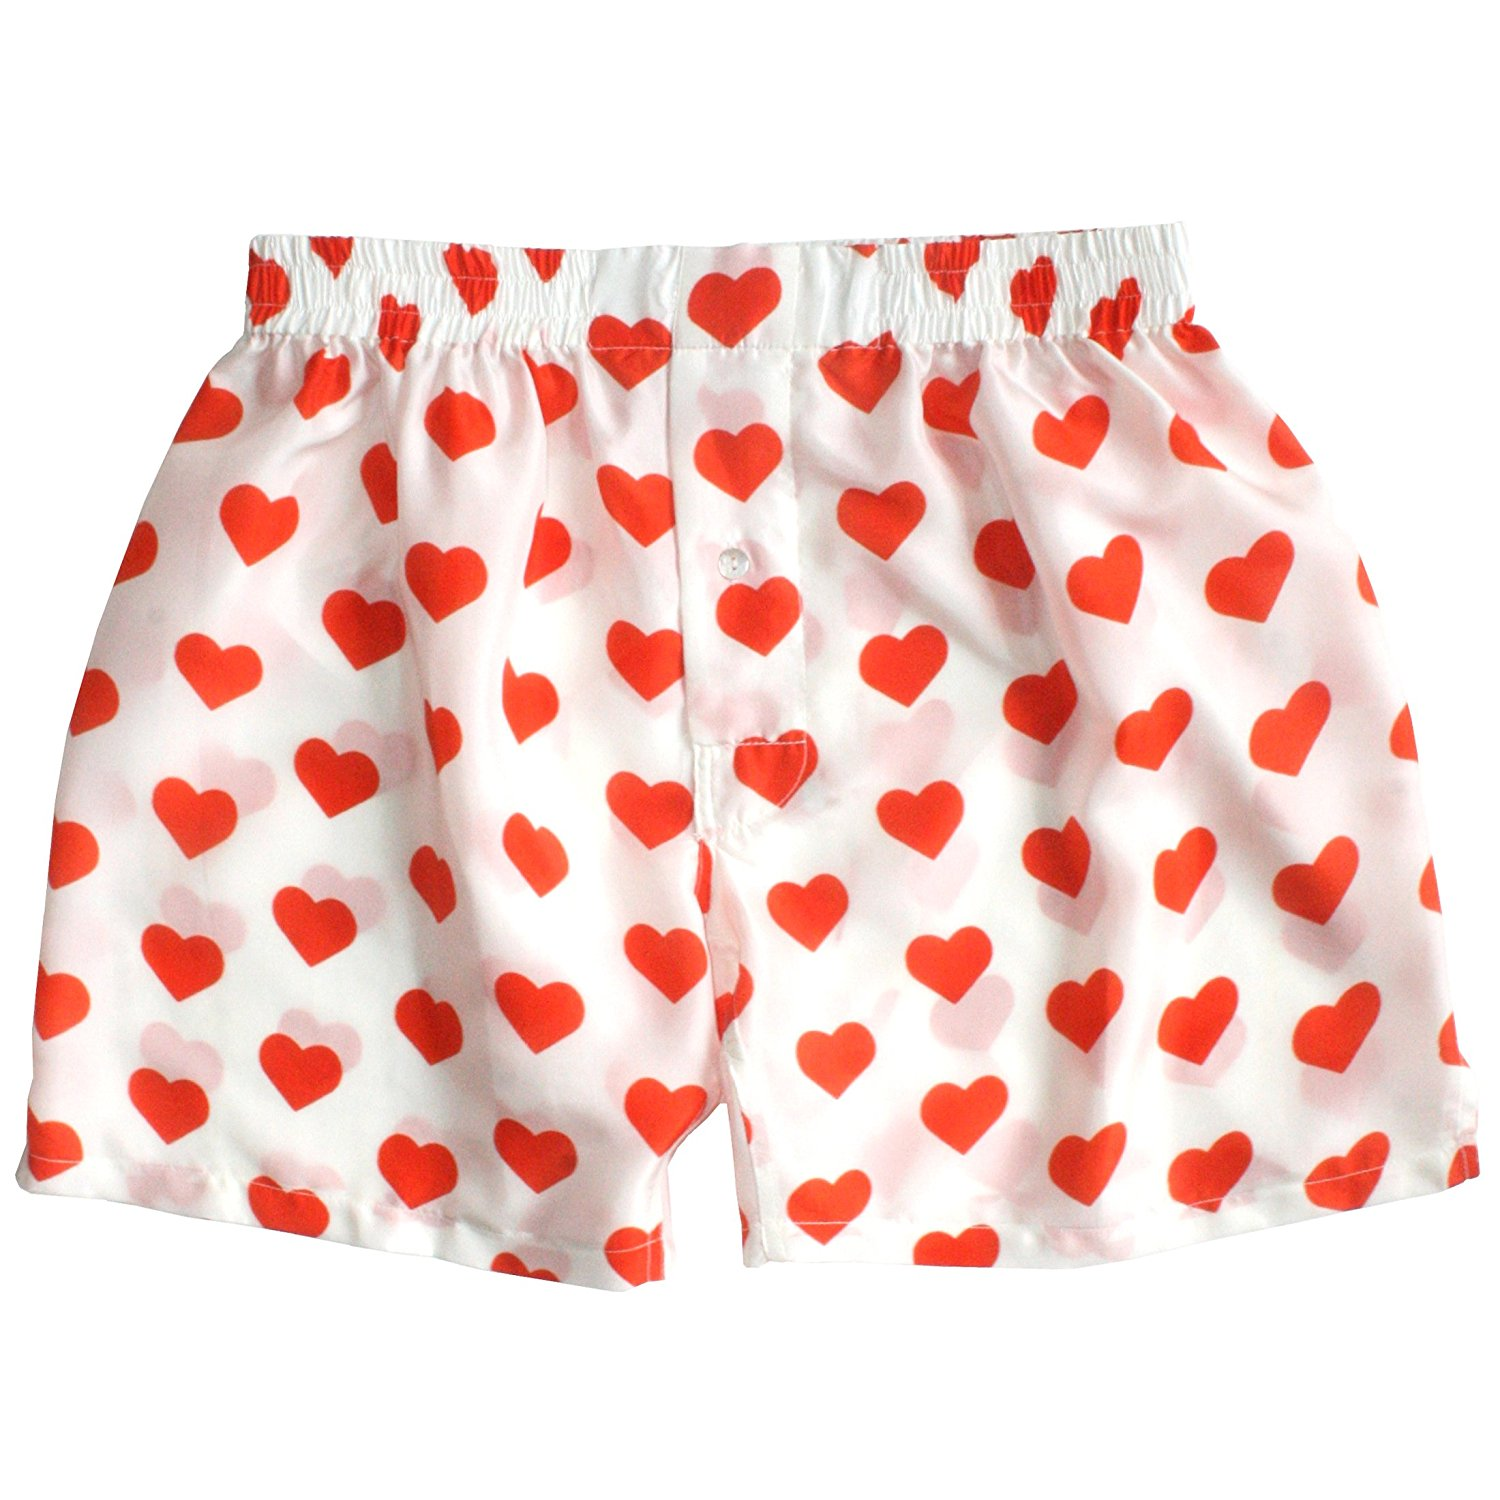 Buy Silk Heart Boxers By Royal Silk Valentines Day Red On White